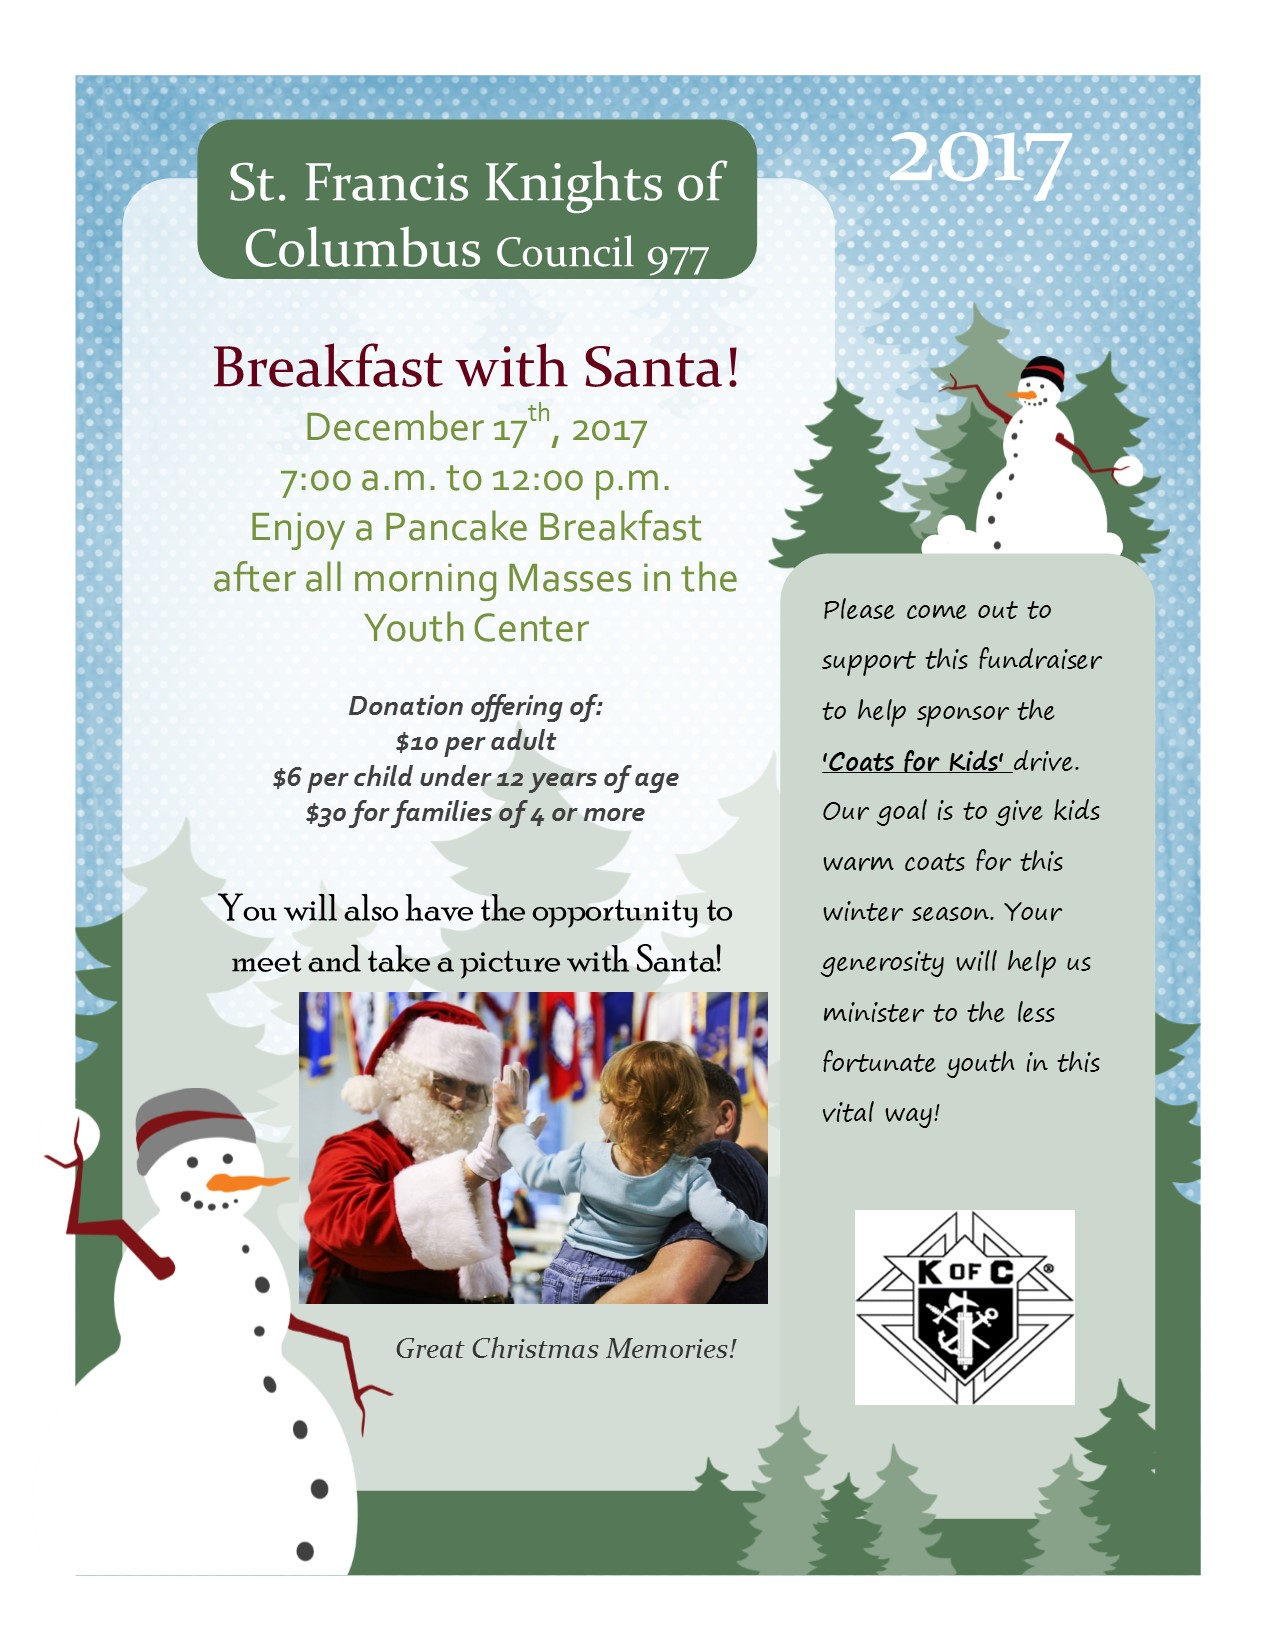 Knights of Colombus - Breakfast with Santa @ St. Francis Youth Center